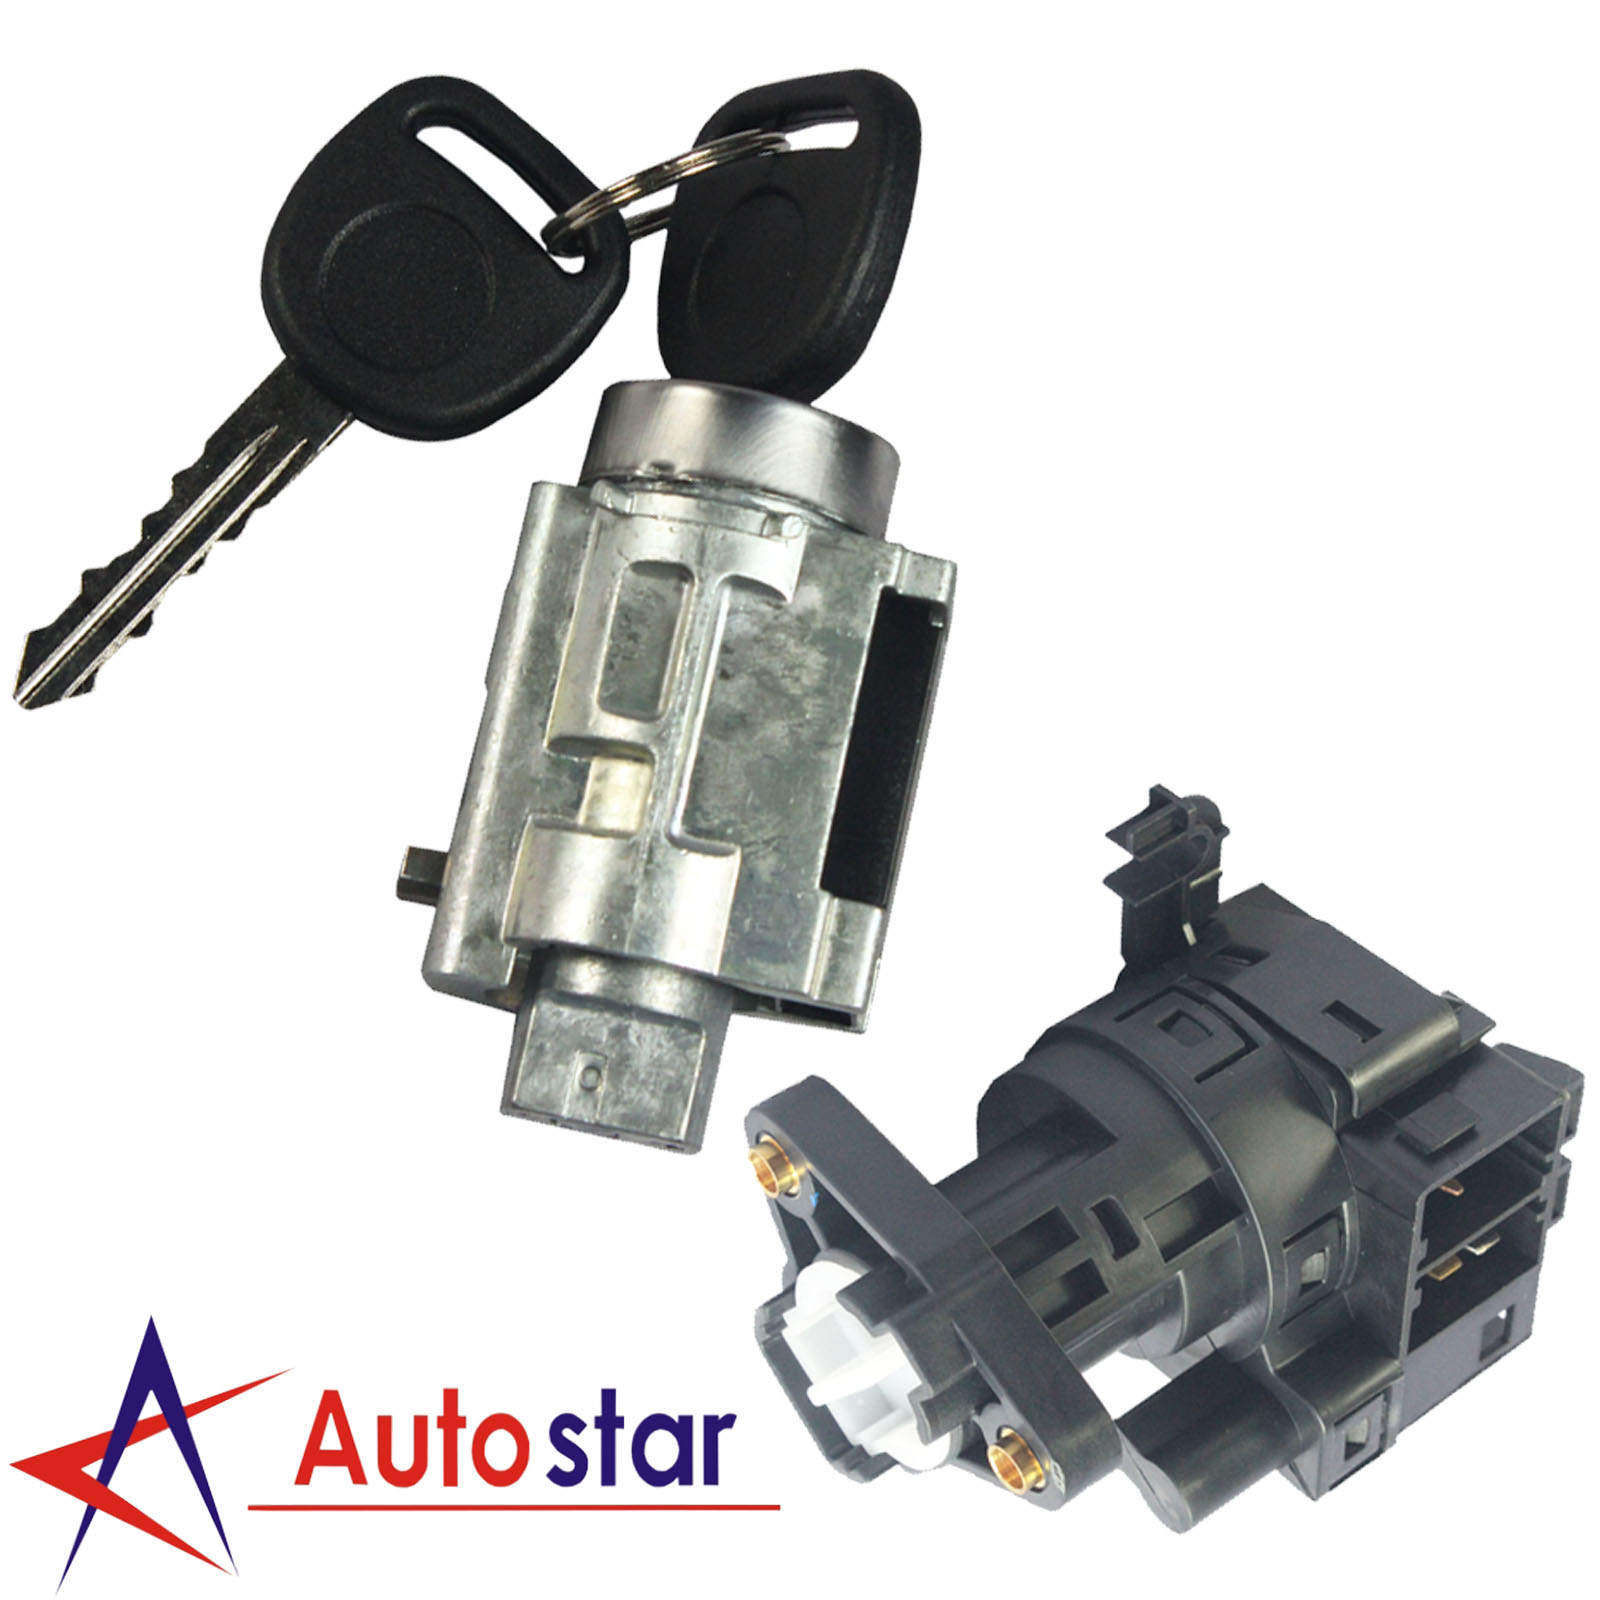 hight resolution of details about 22599340 12458191 for chevy impala classic ignition lock cylinder switch key